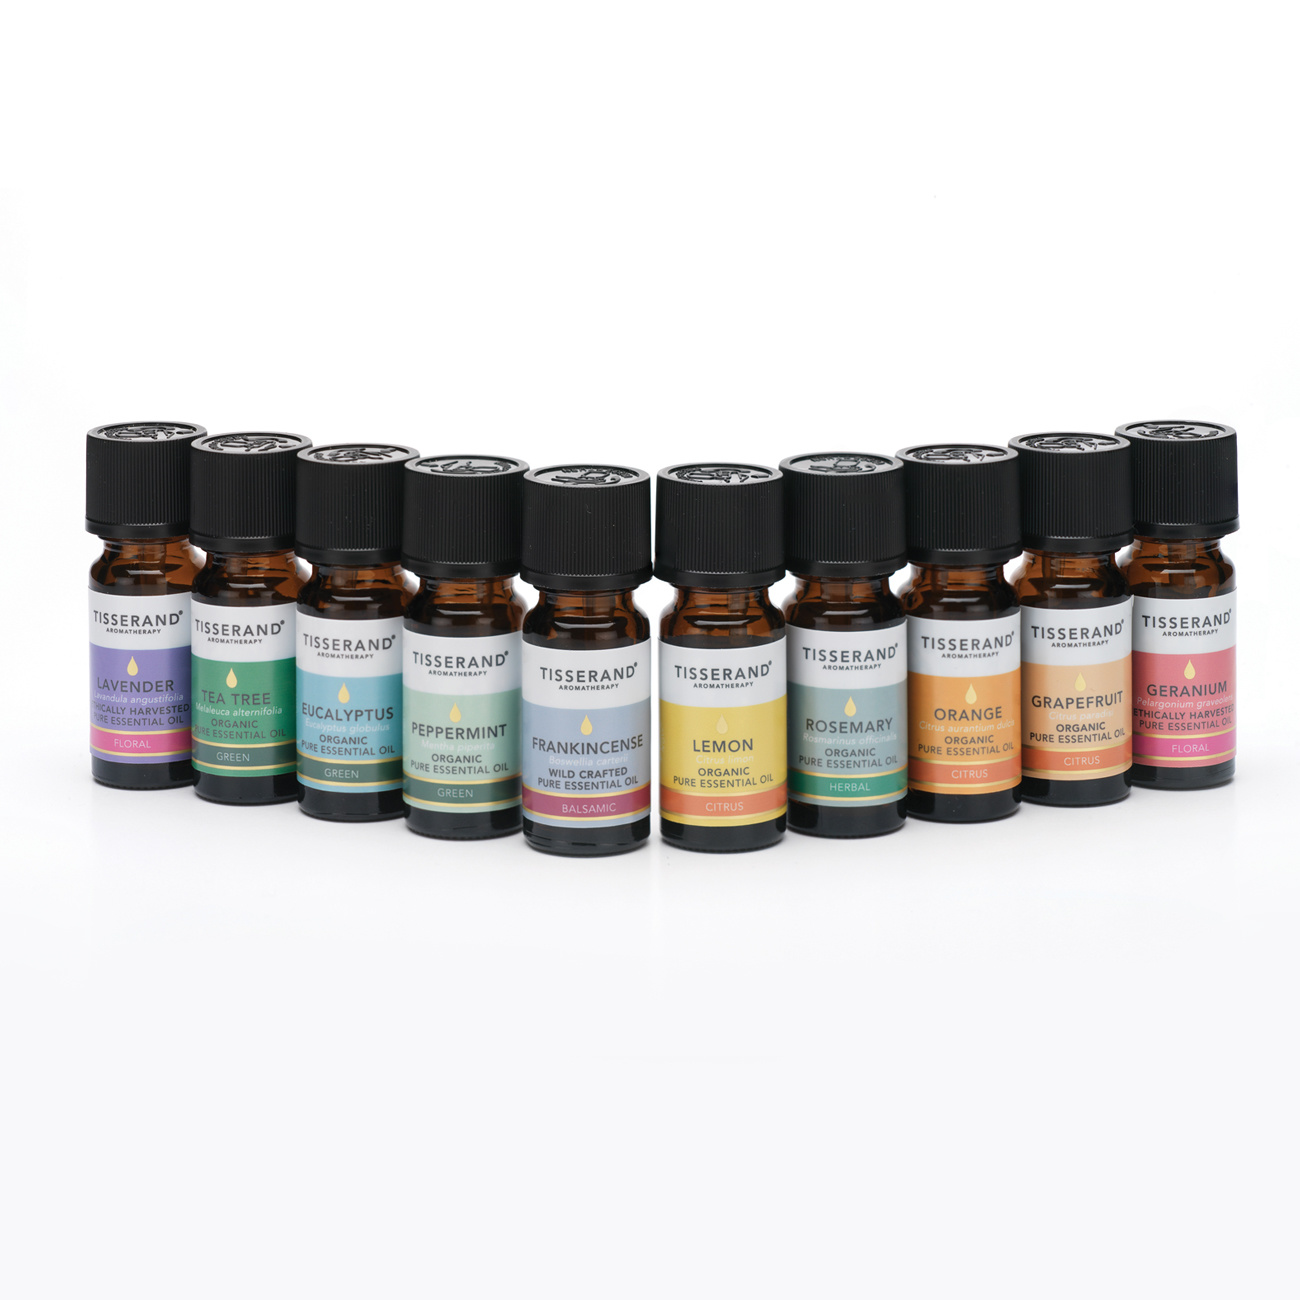 top_10_essential_oils_tisserand_aromatherapy_group_1300